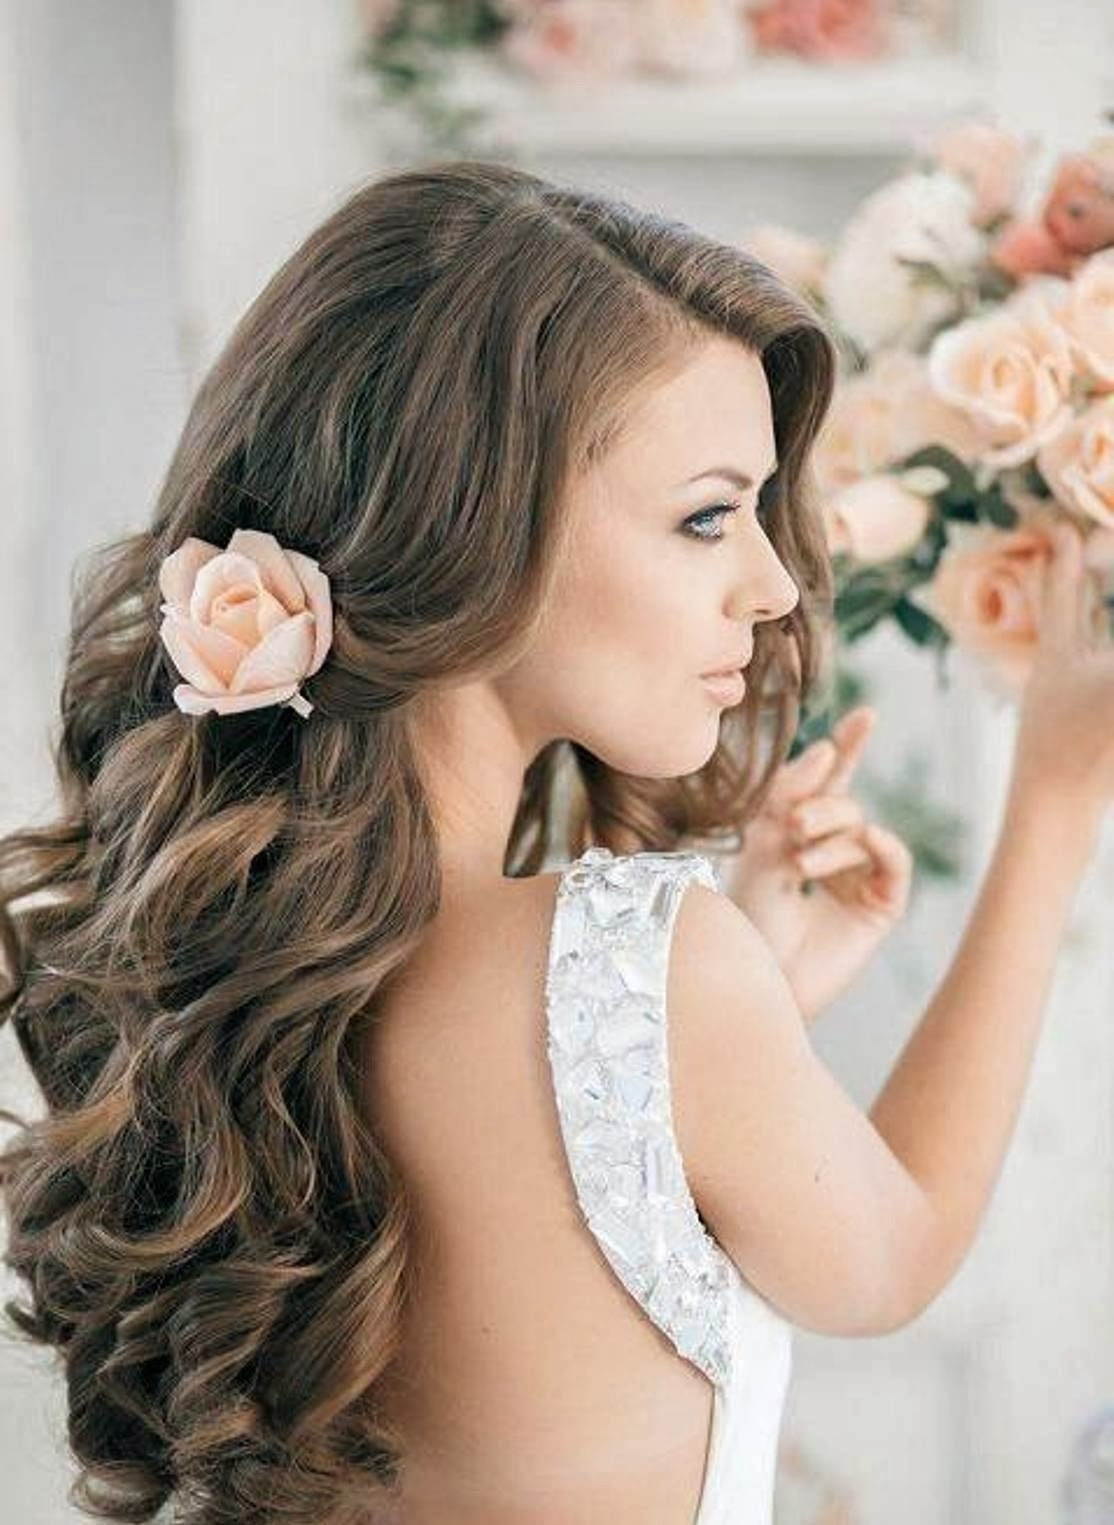 hairstyles for long hair pinterest